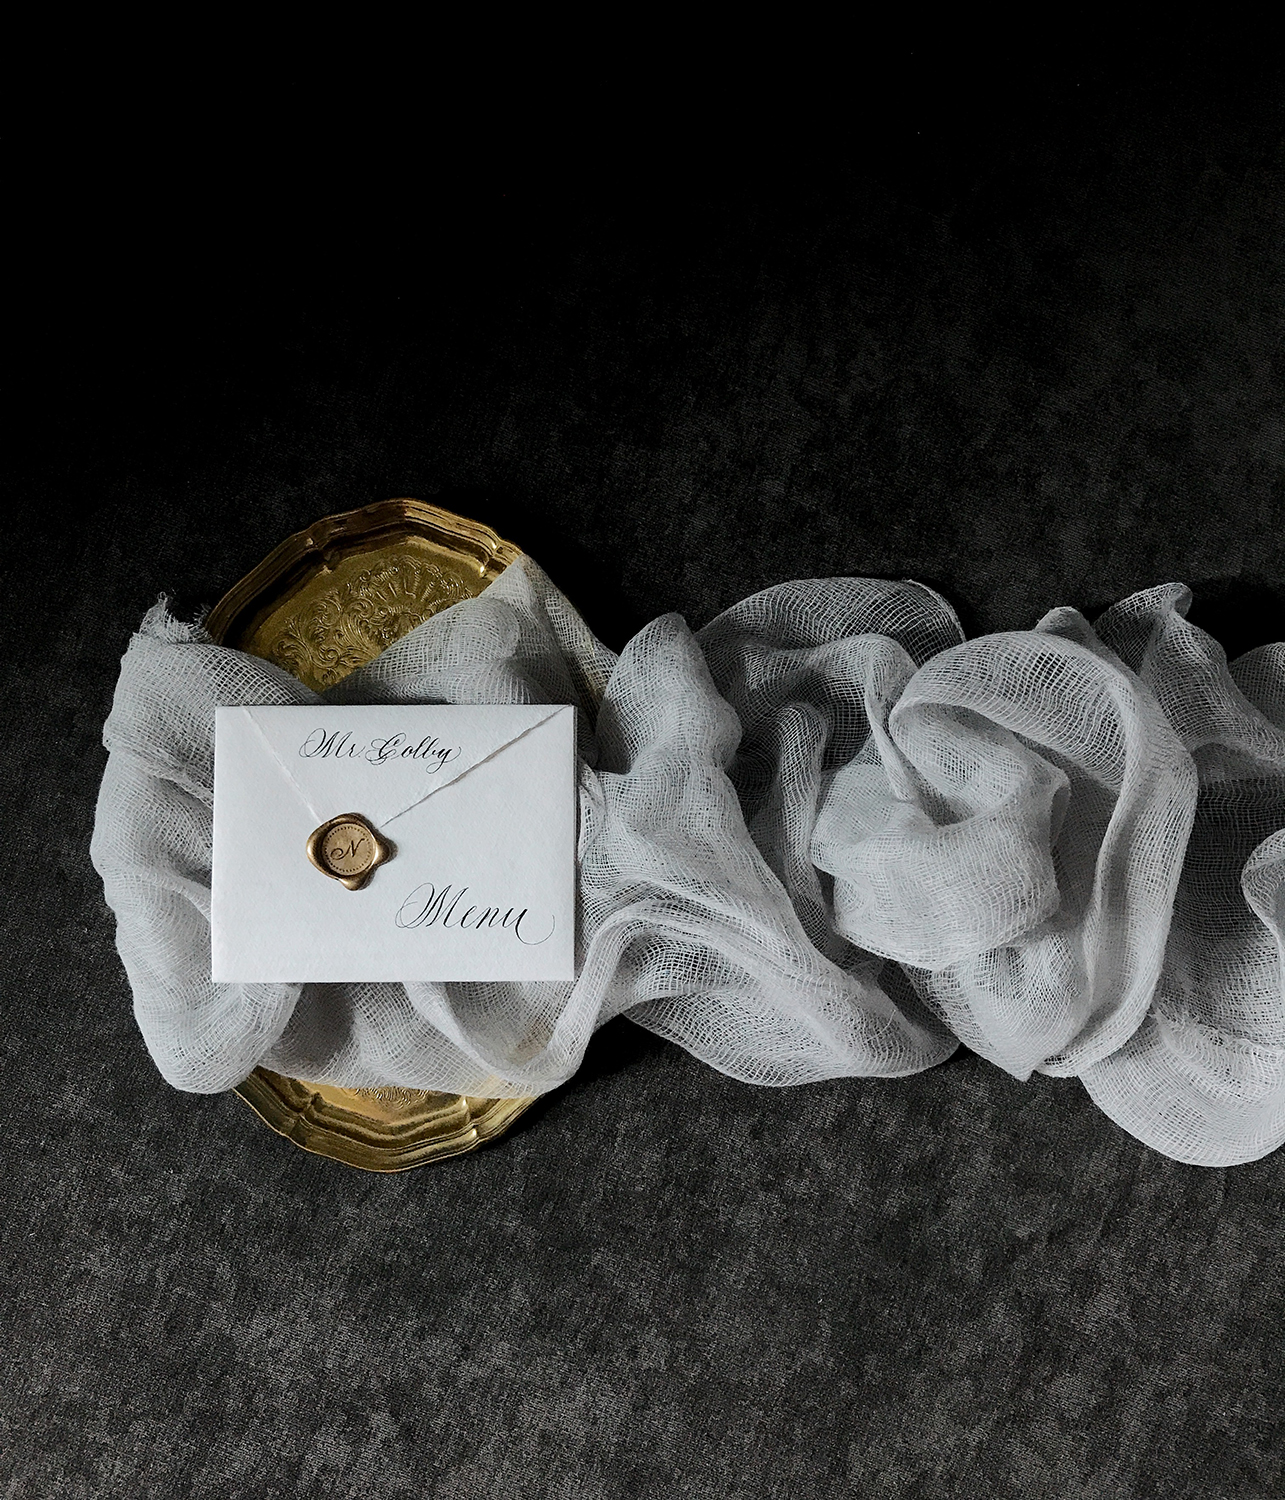 custom-wedding-menu-place-card-designed-by-leslie-and-paper-with-wax-seals-calligraphy.JPG